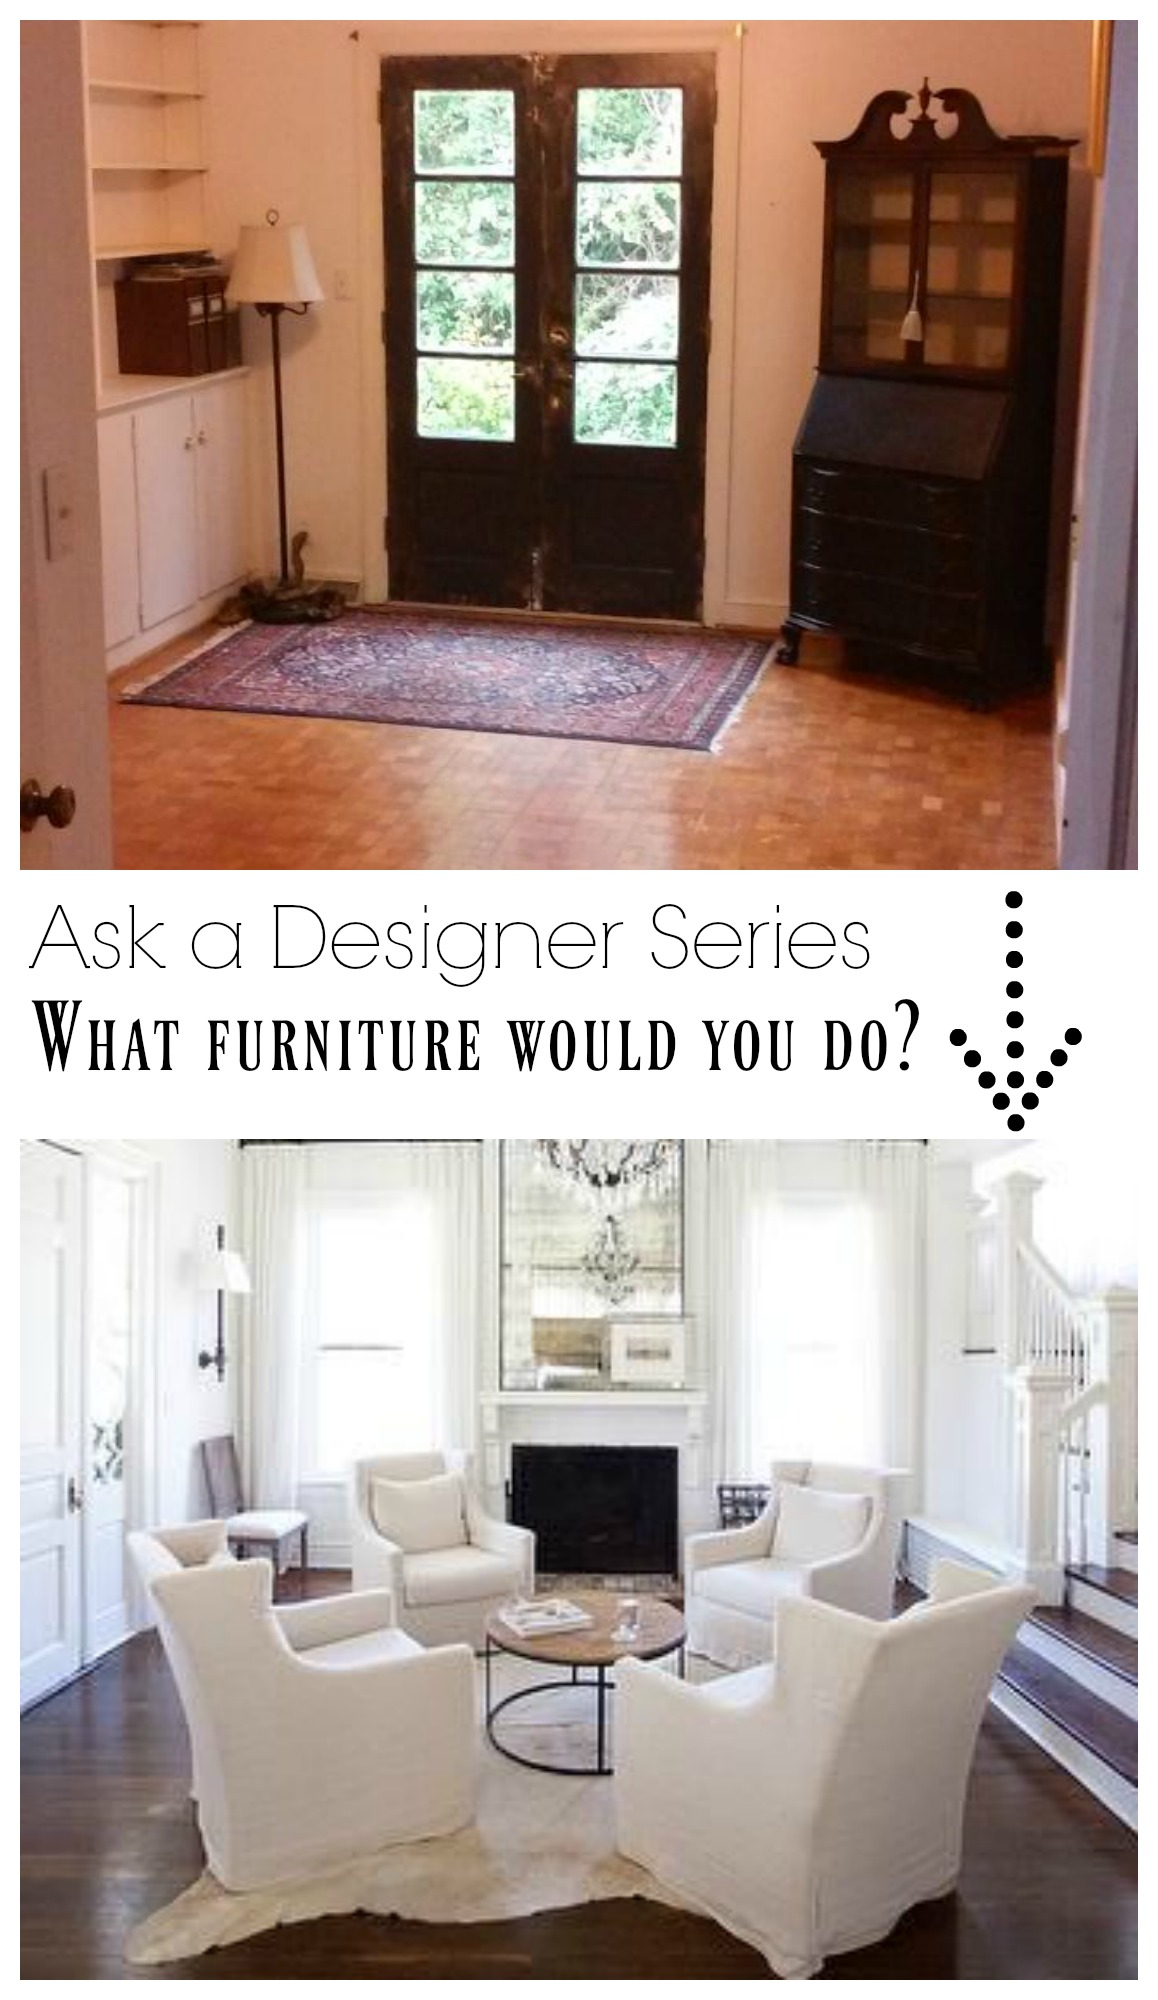 Ask a Designer Series- What furniture placement would you do?